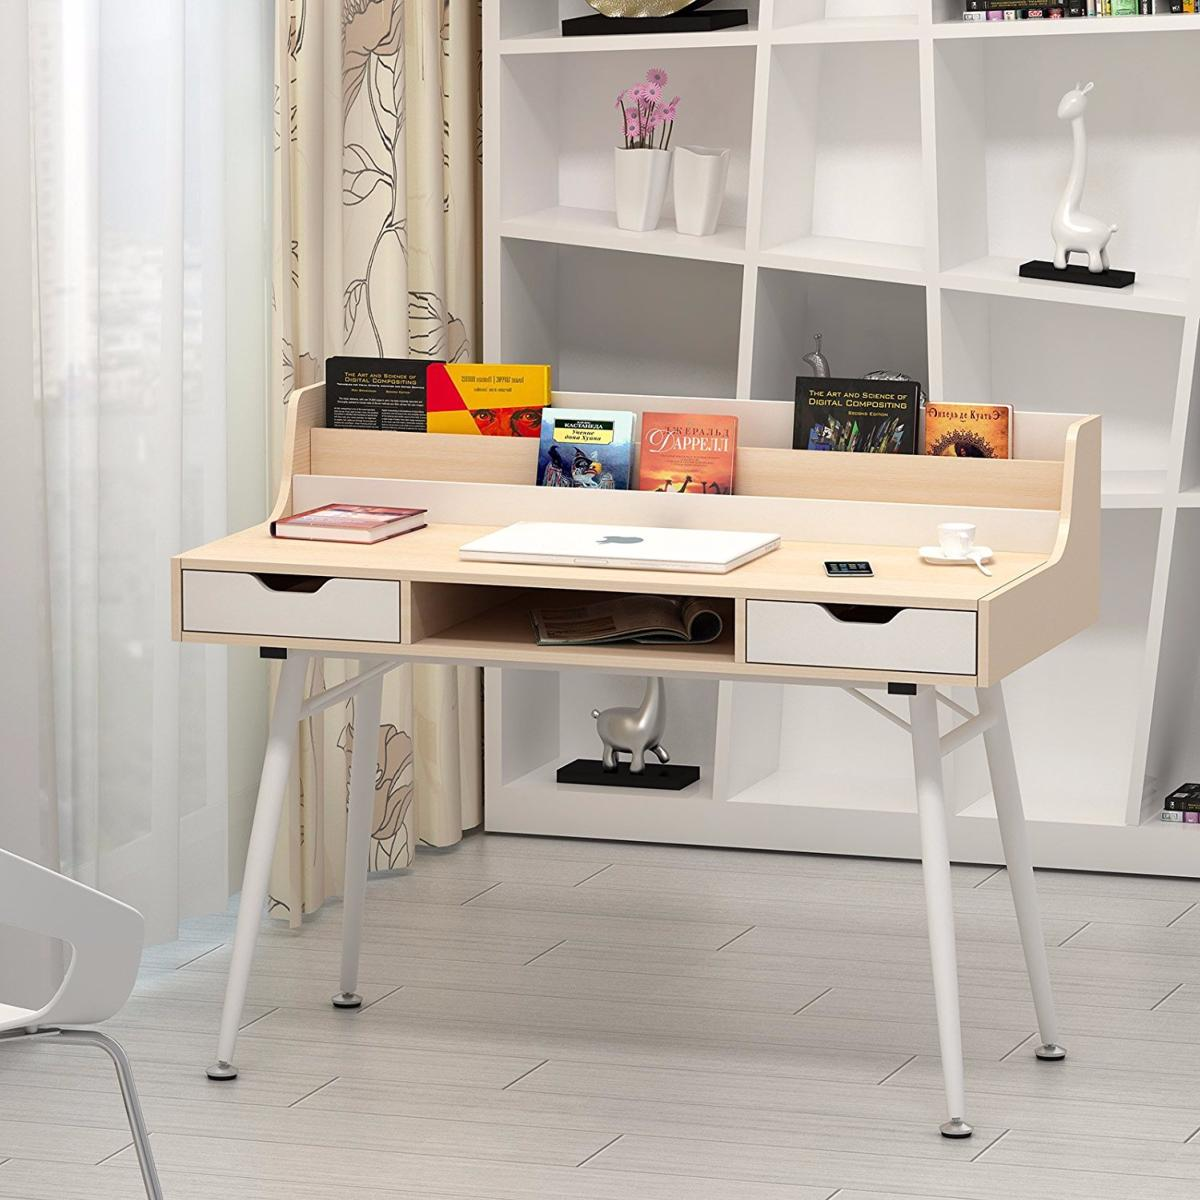 Bureau informatique design h tre cielterre commerce for Bureau informatique design